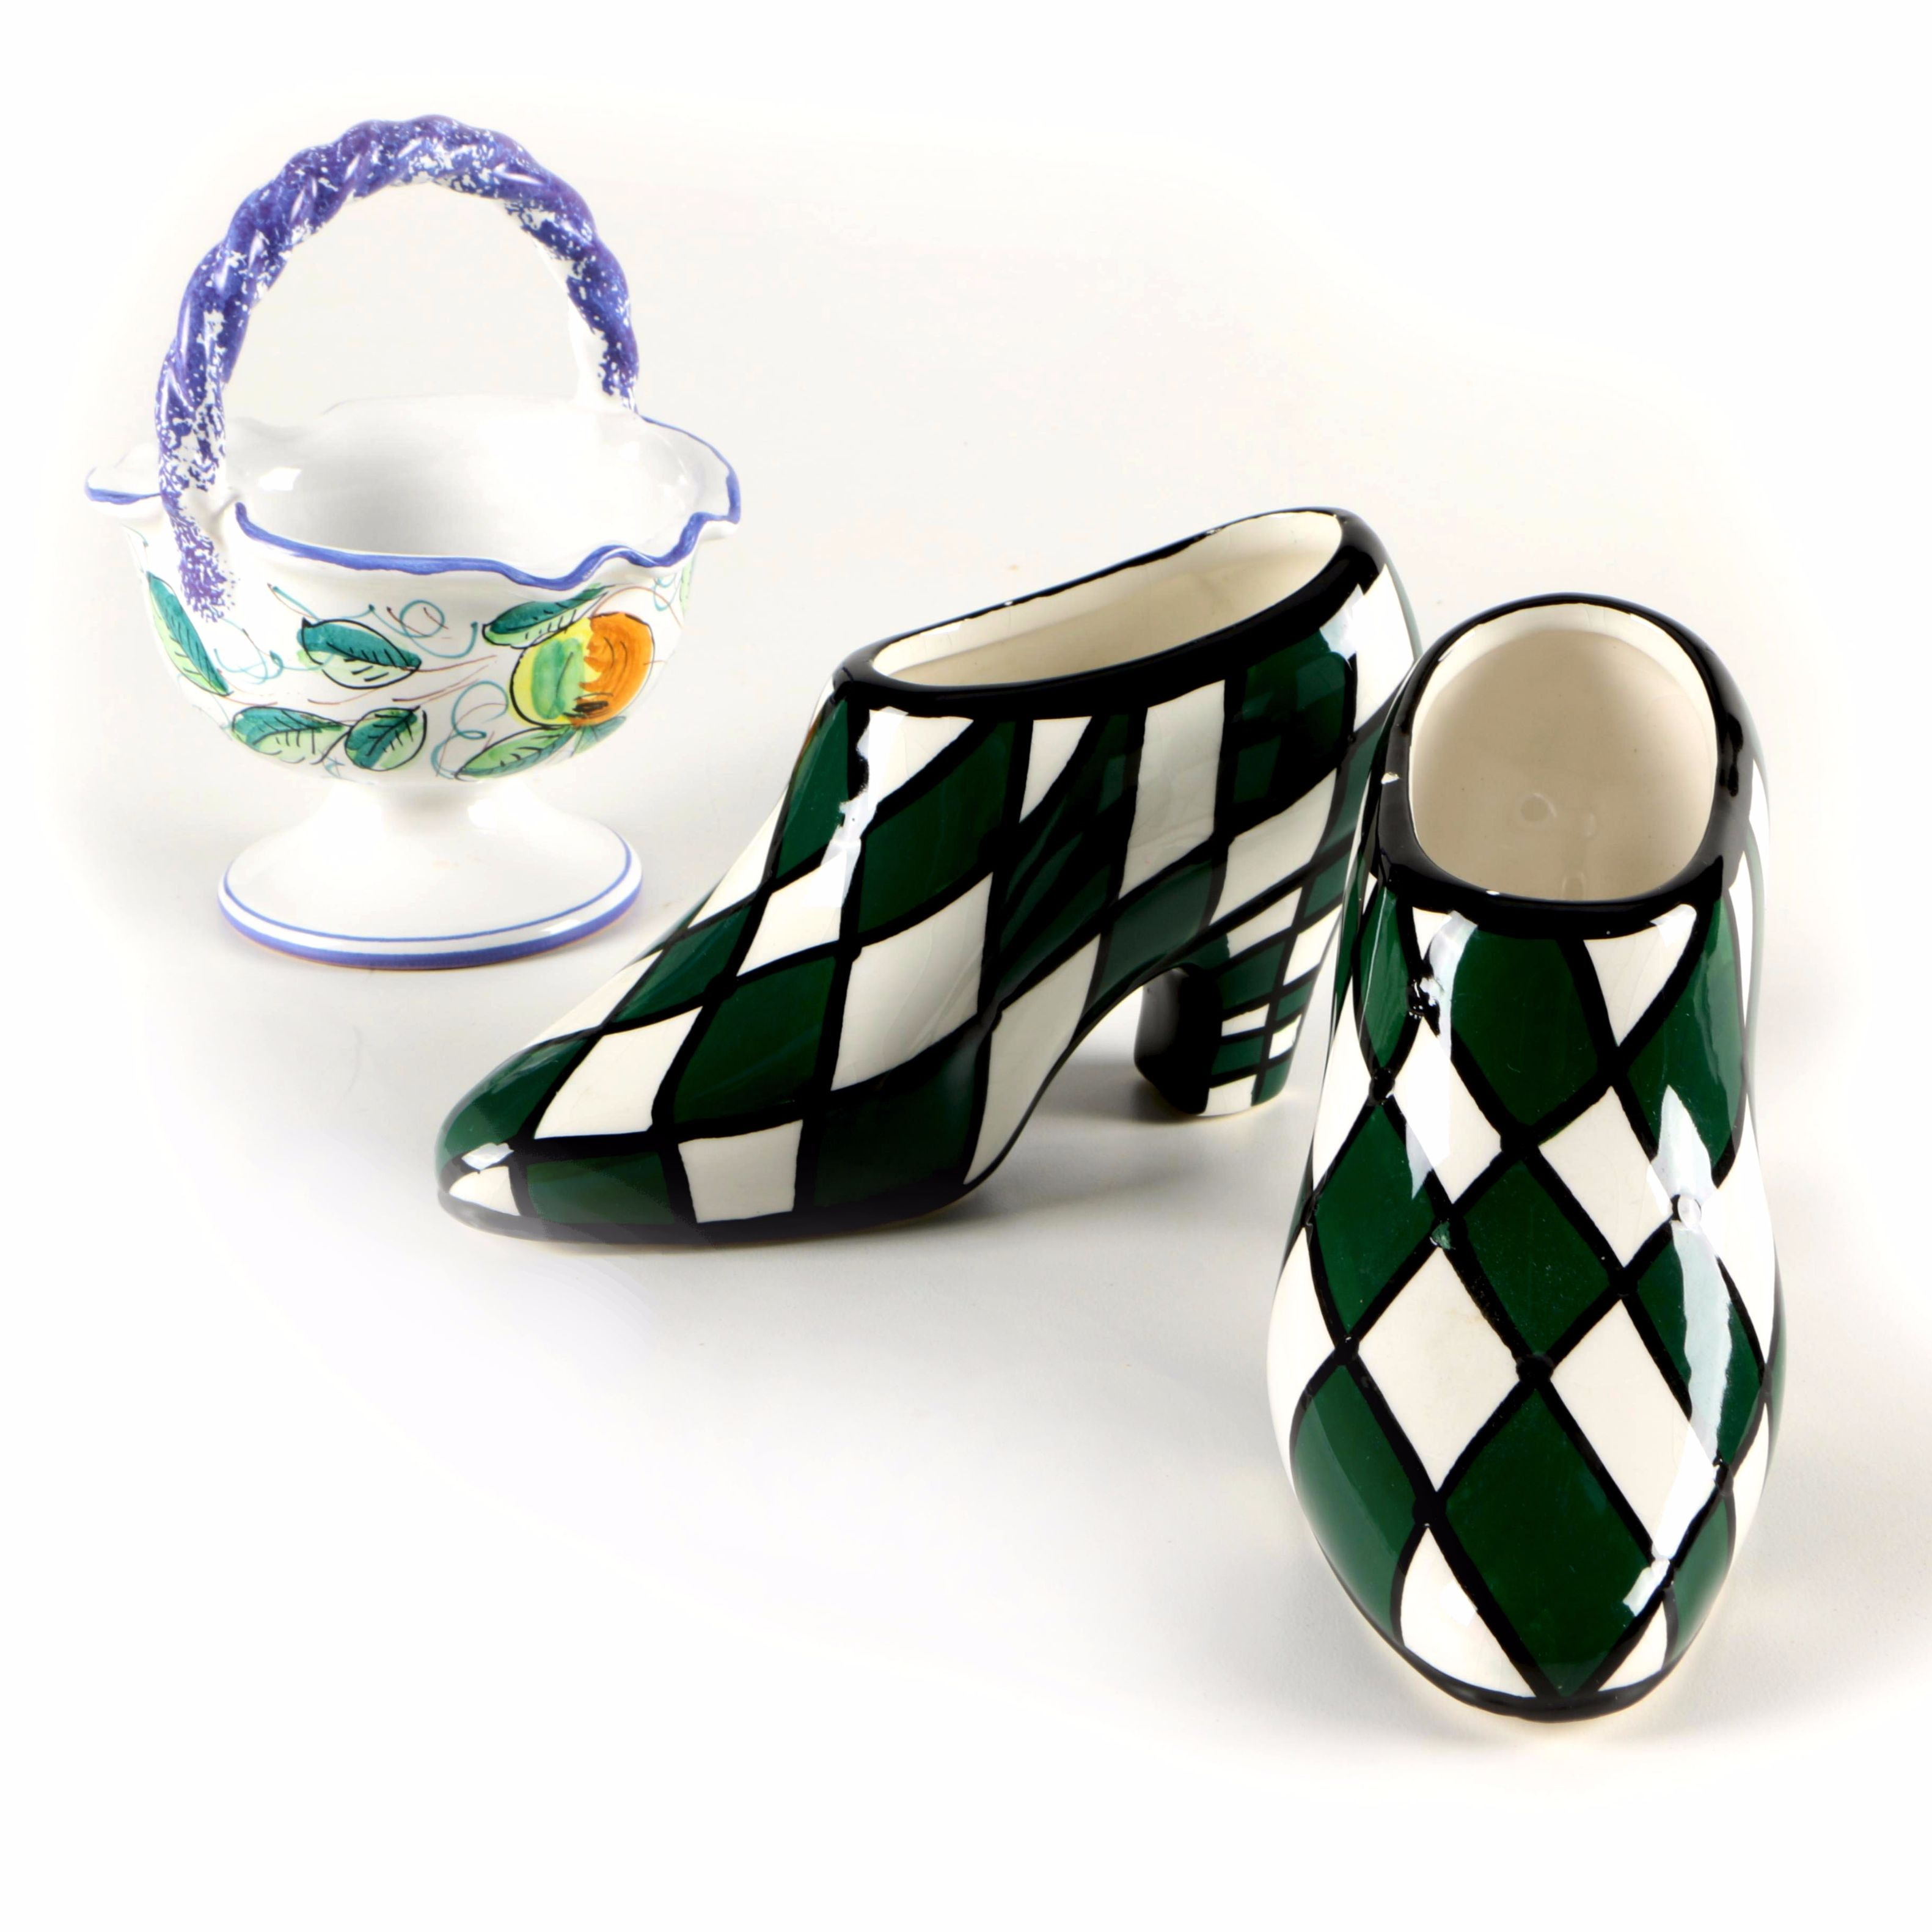 Italian Hand-Painted Ceramic Basket and Pair of Ceramic Shoes